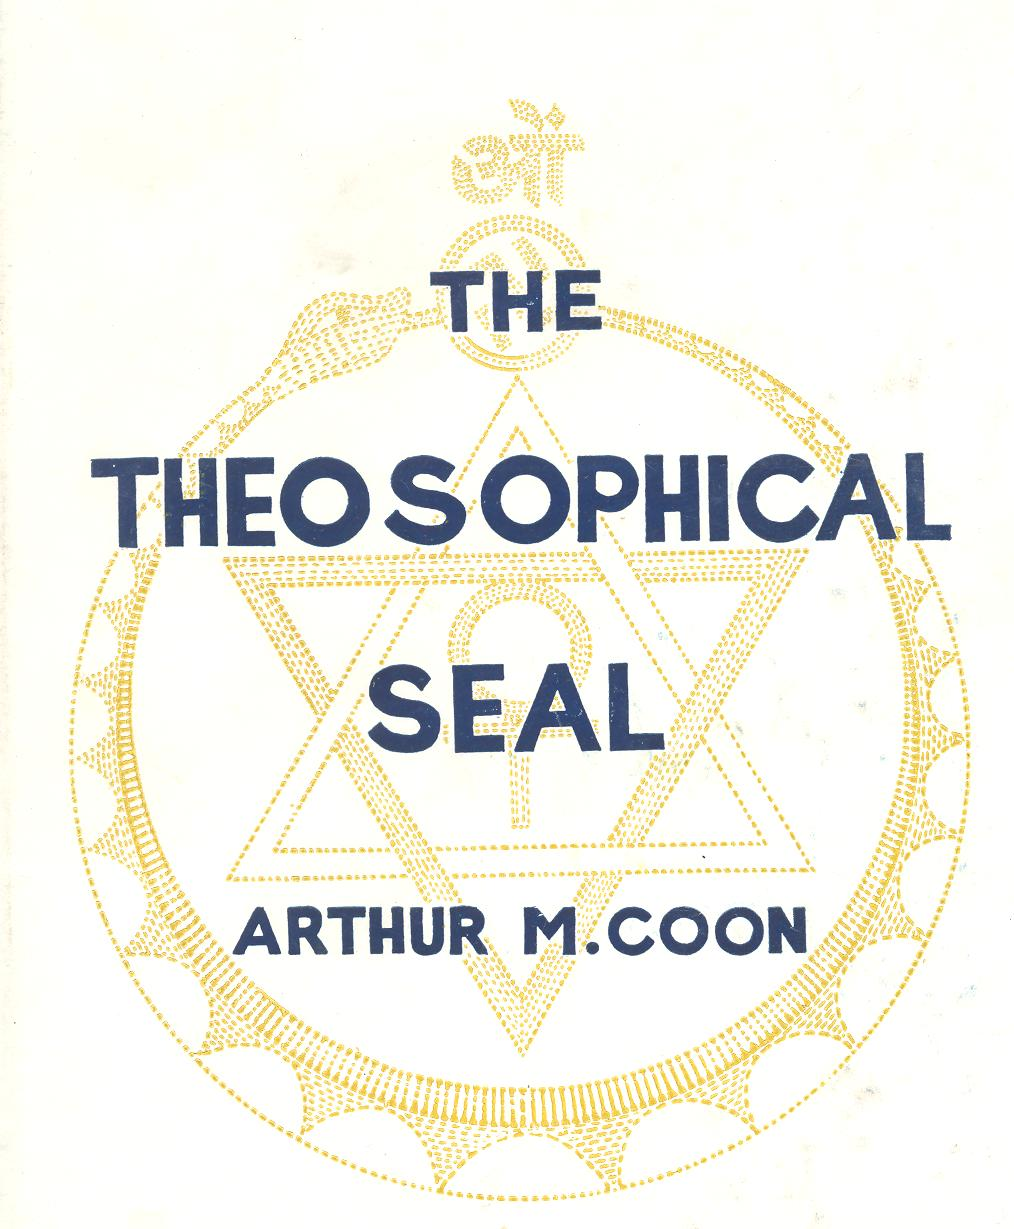 The Teosophical Seal